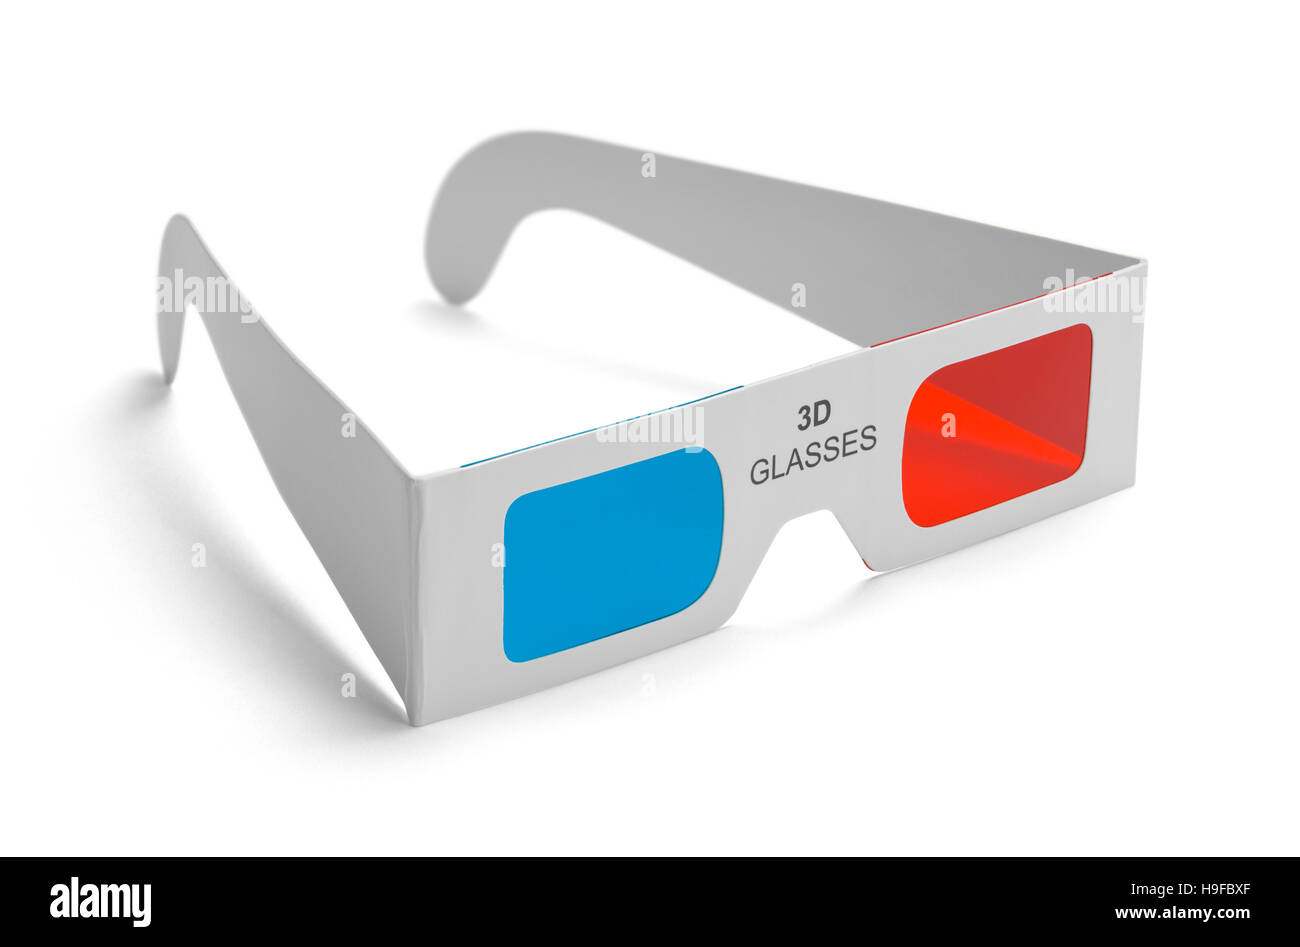 3D Movie Glasses Isolated on White Background. - Stock Image